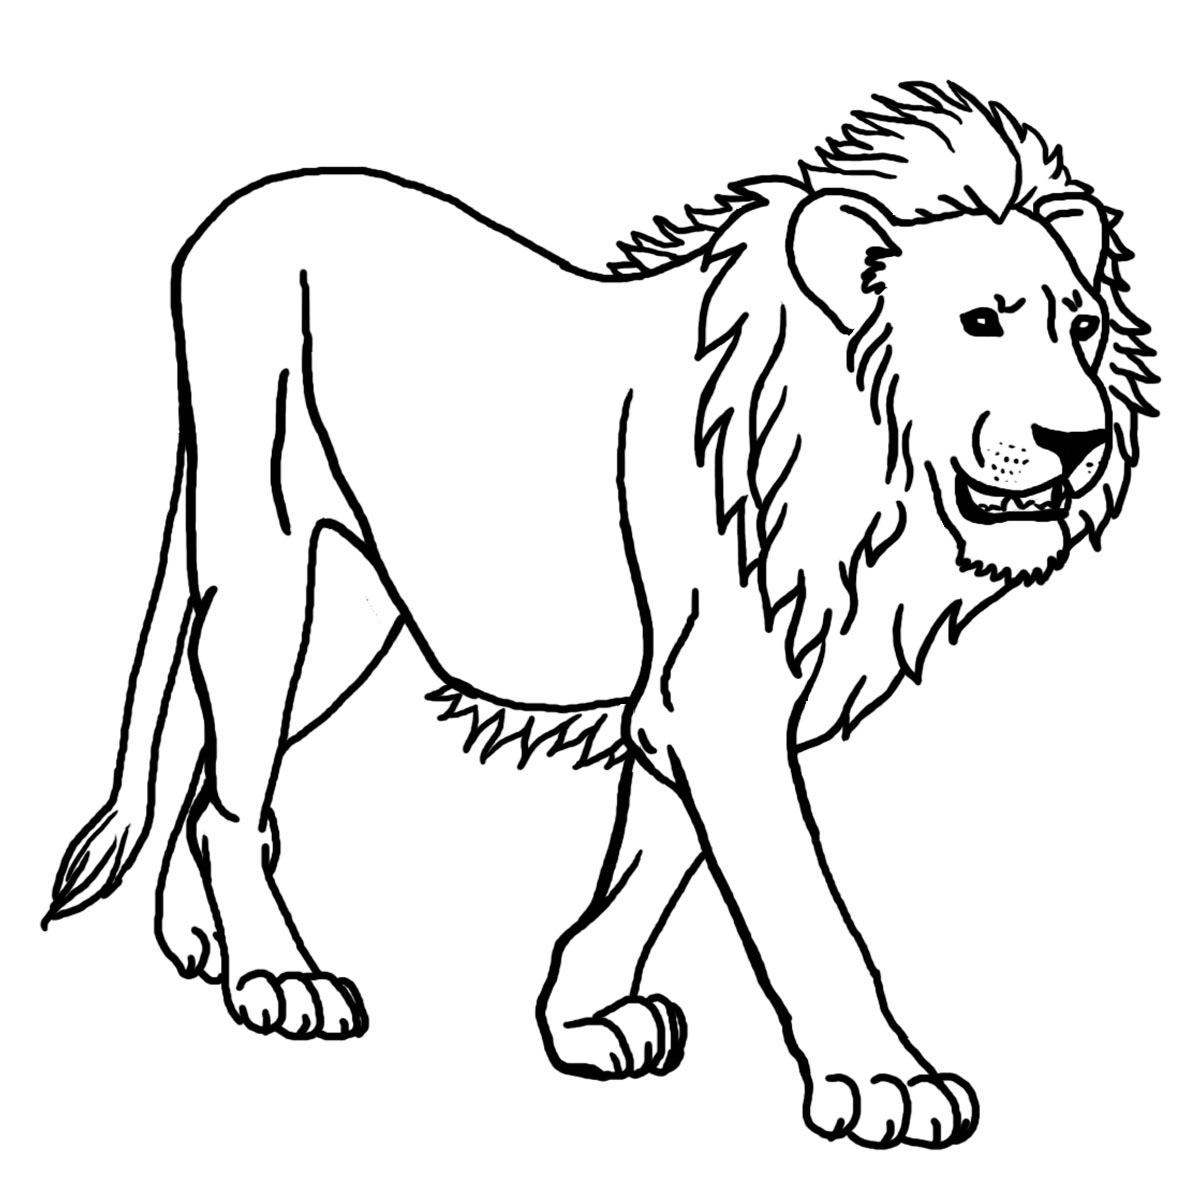 Animals Coloring pages for kids Simple lion Print Animal to print color